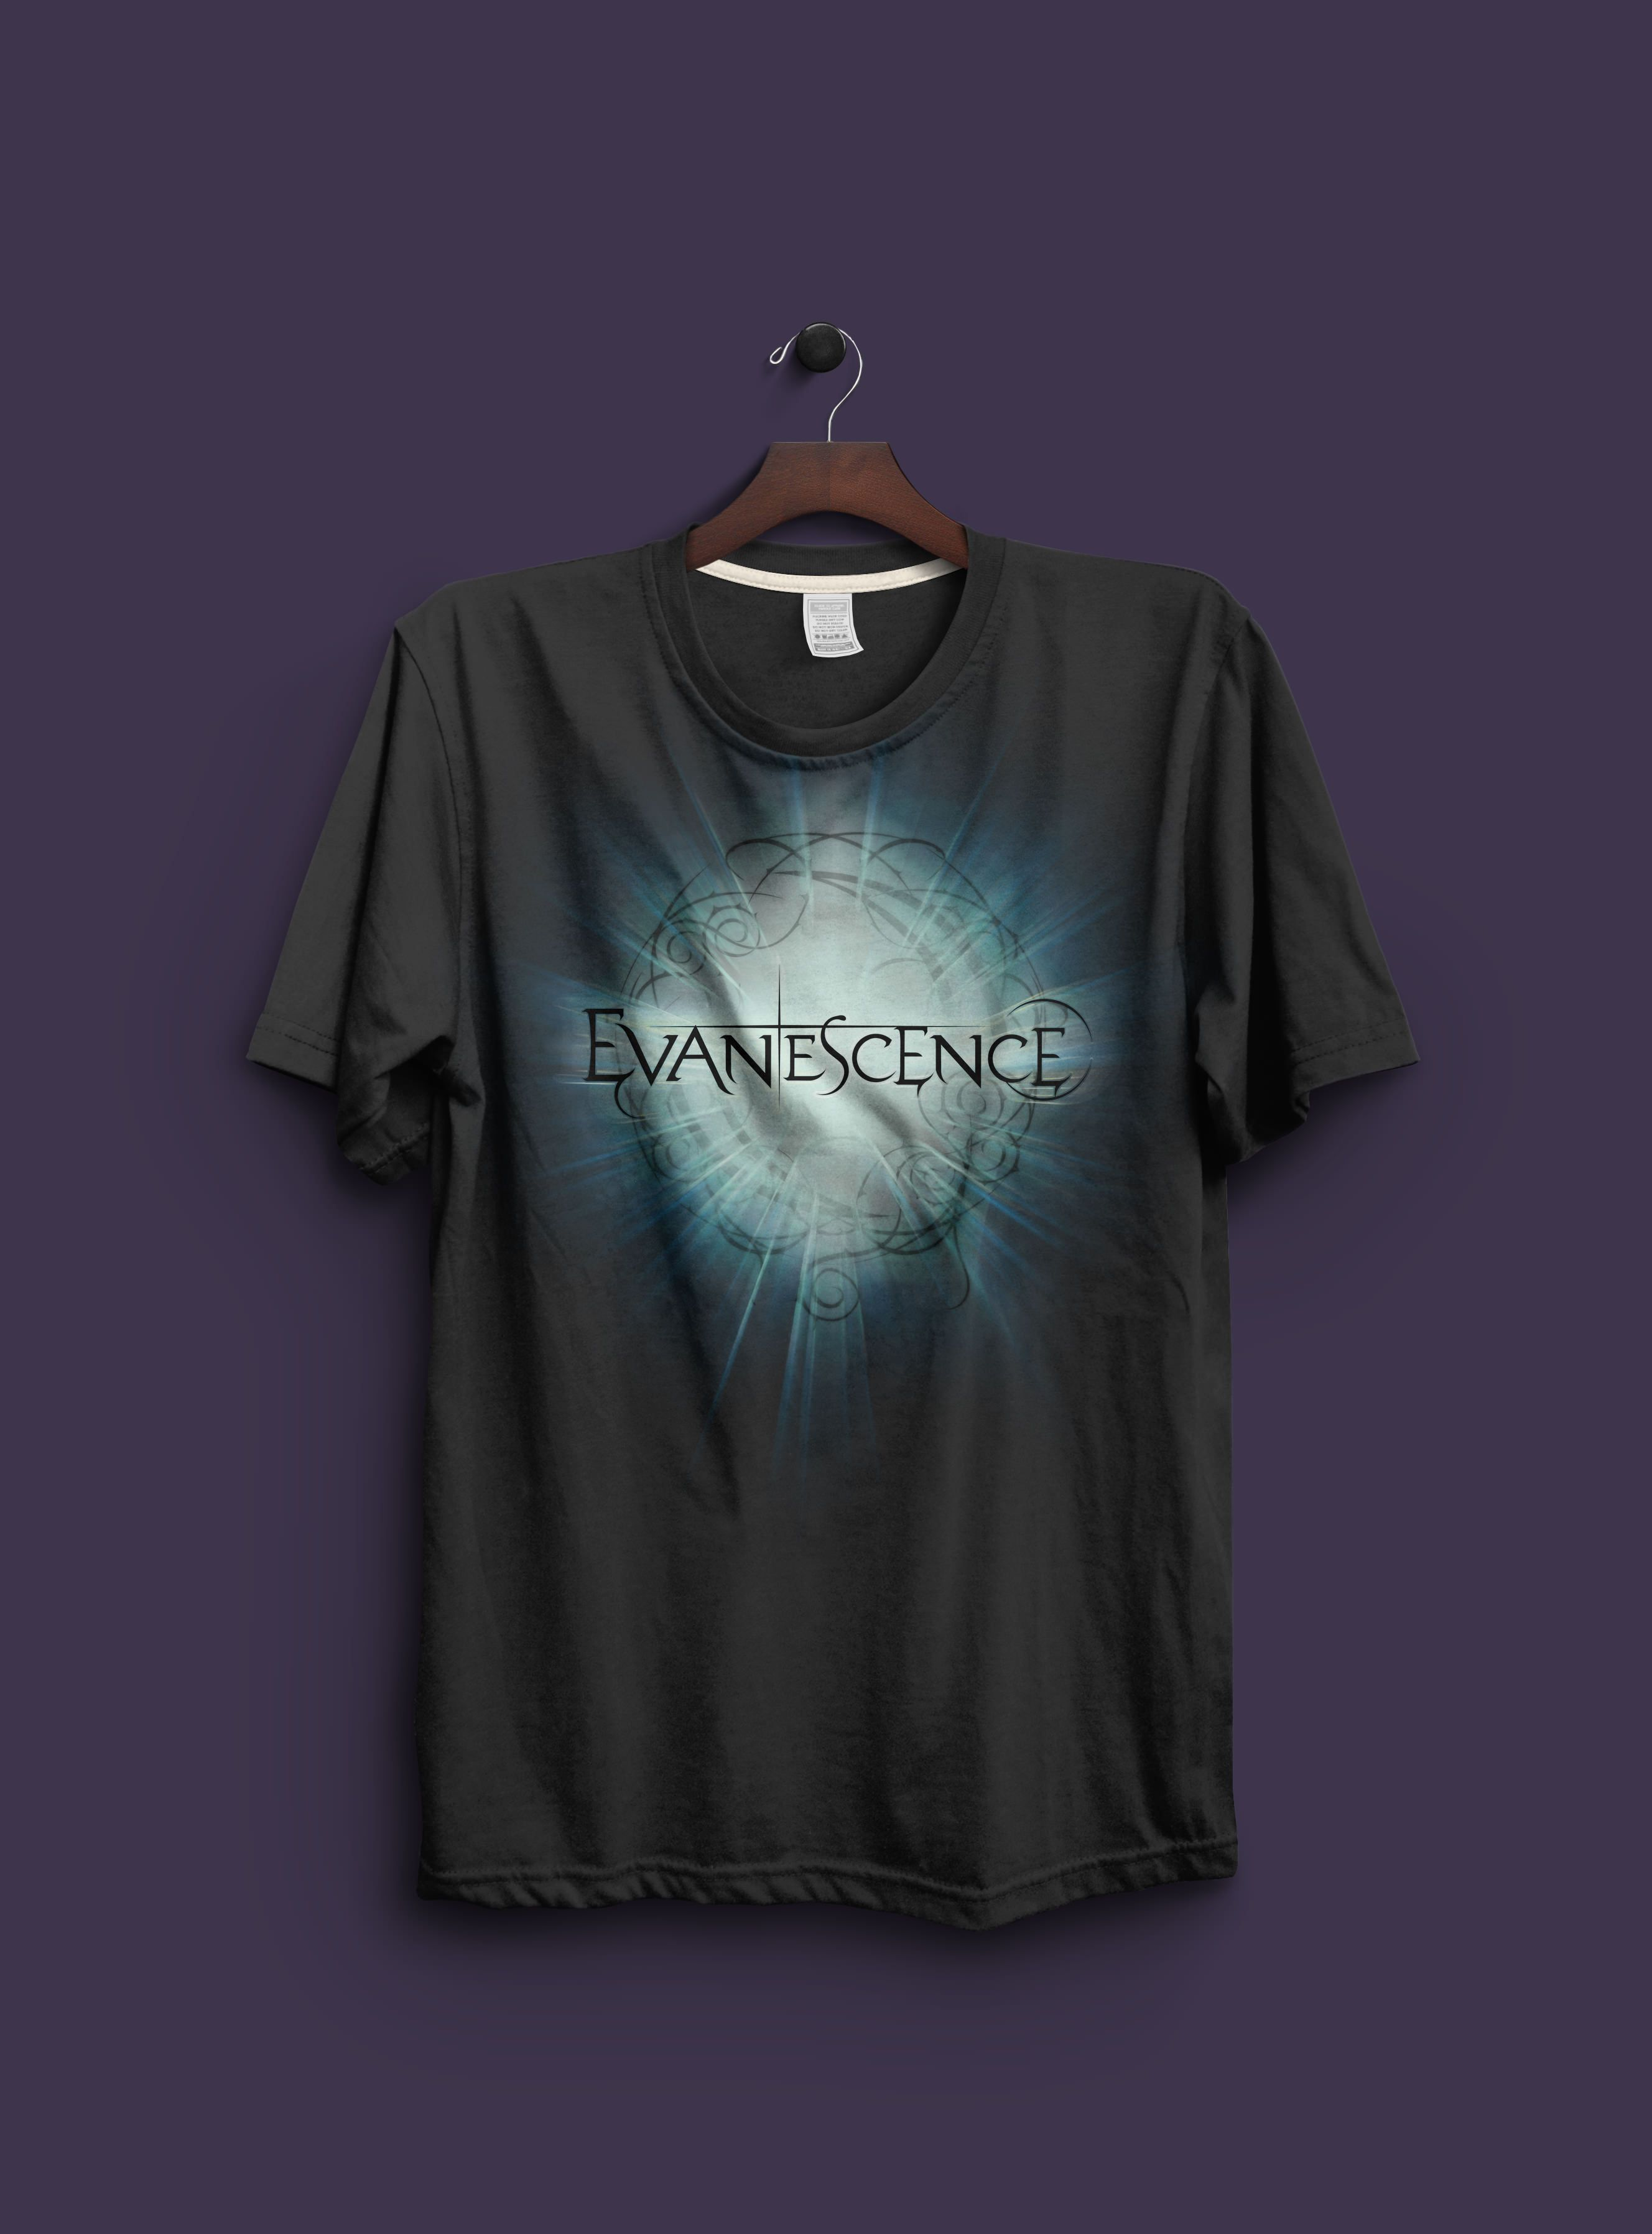 003f74f2 Hard rock artists Evanescence t-shirts, merch, and apparel graphics for the  bands 2008 national tour and online store. Designed by Jeff Rigsby.